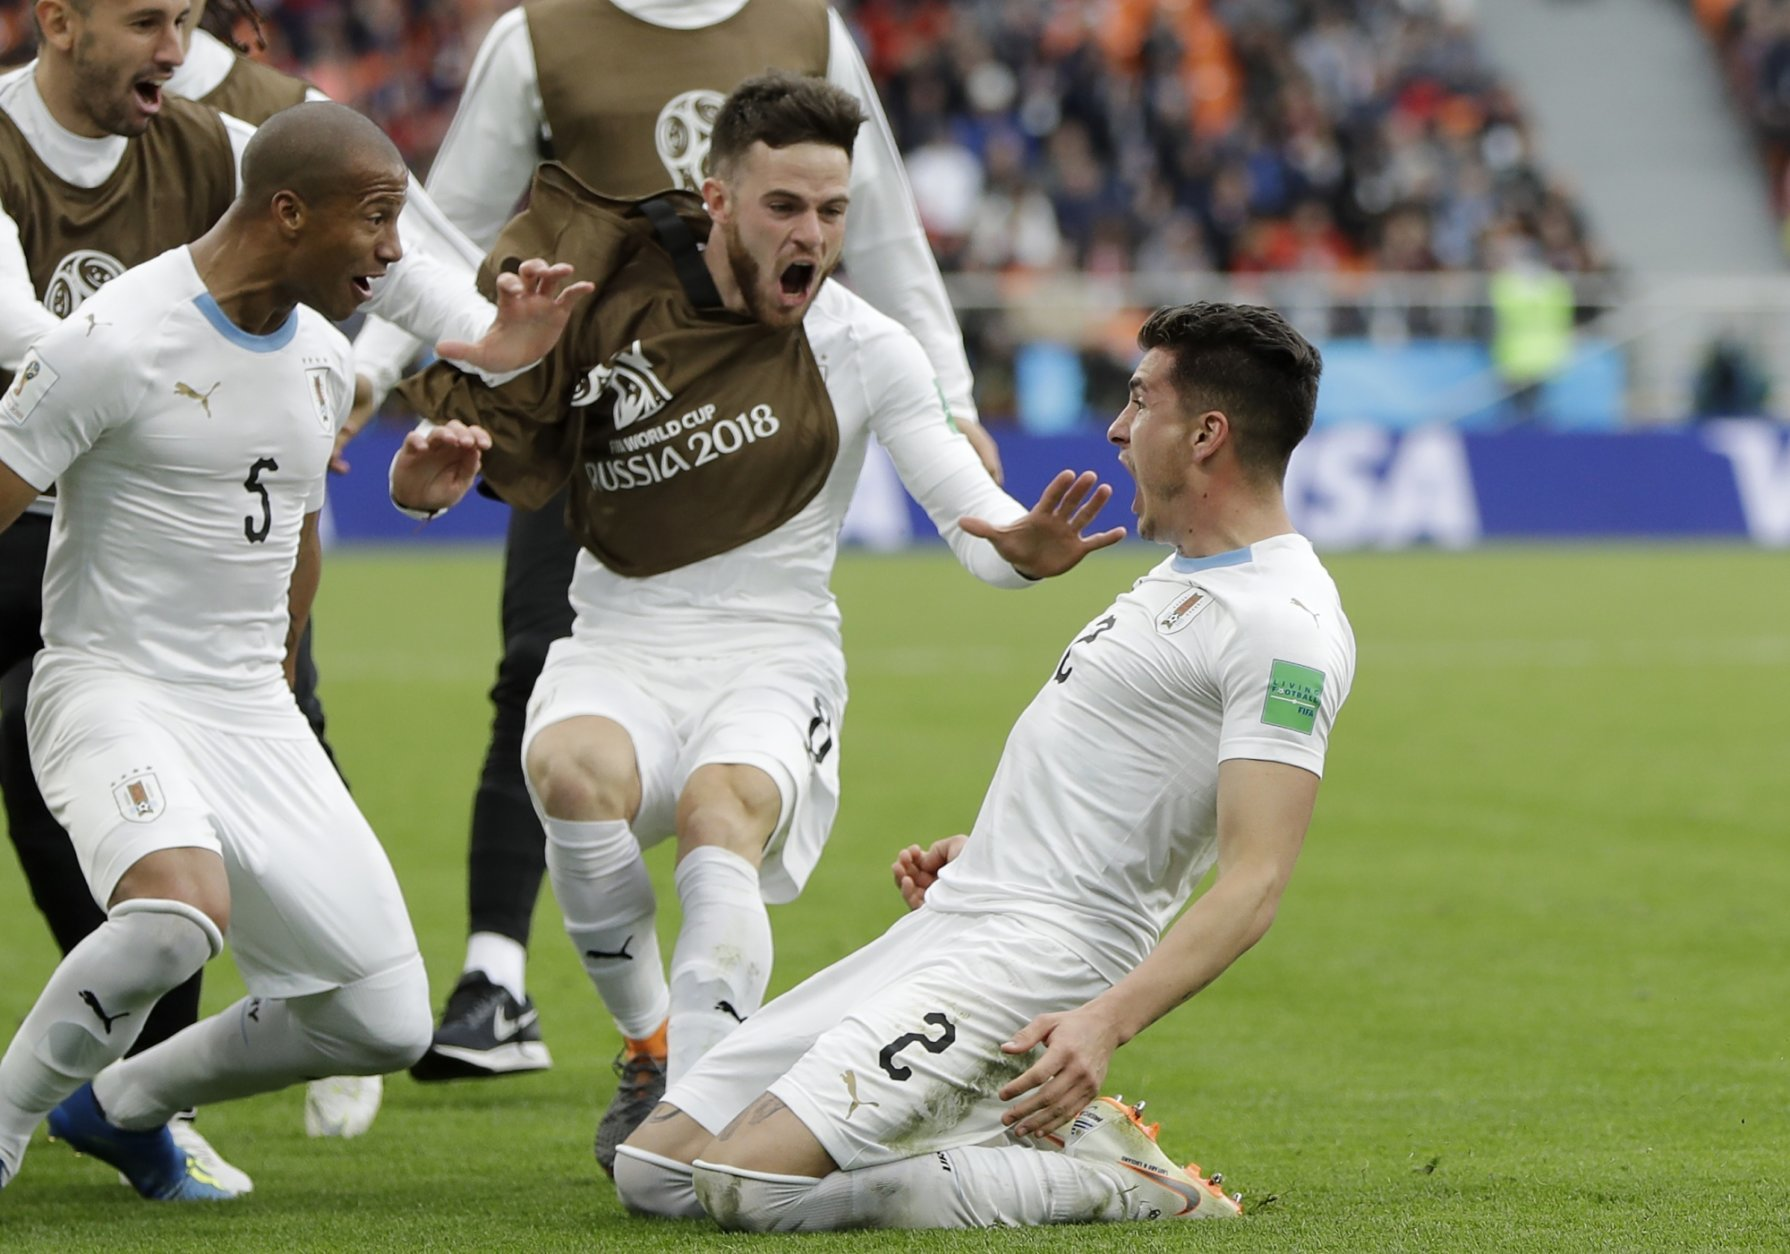 Uruguay's Jose Gimenez, right, celebrates with his teammates after scoring his side's opening goal during the group A match between Egypt and Uruguay at the 2018 soccer World Cup in the Yekaterinburg Arena in Yekaterinburg, Russia, Friday, June 15, 2018. (AP Photo/Natacha Pisarenko)